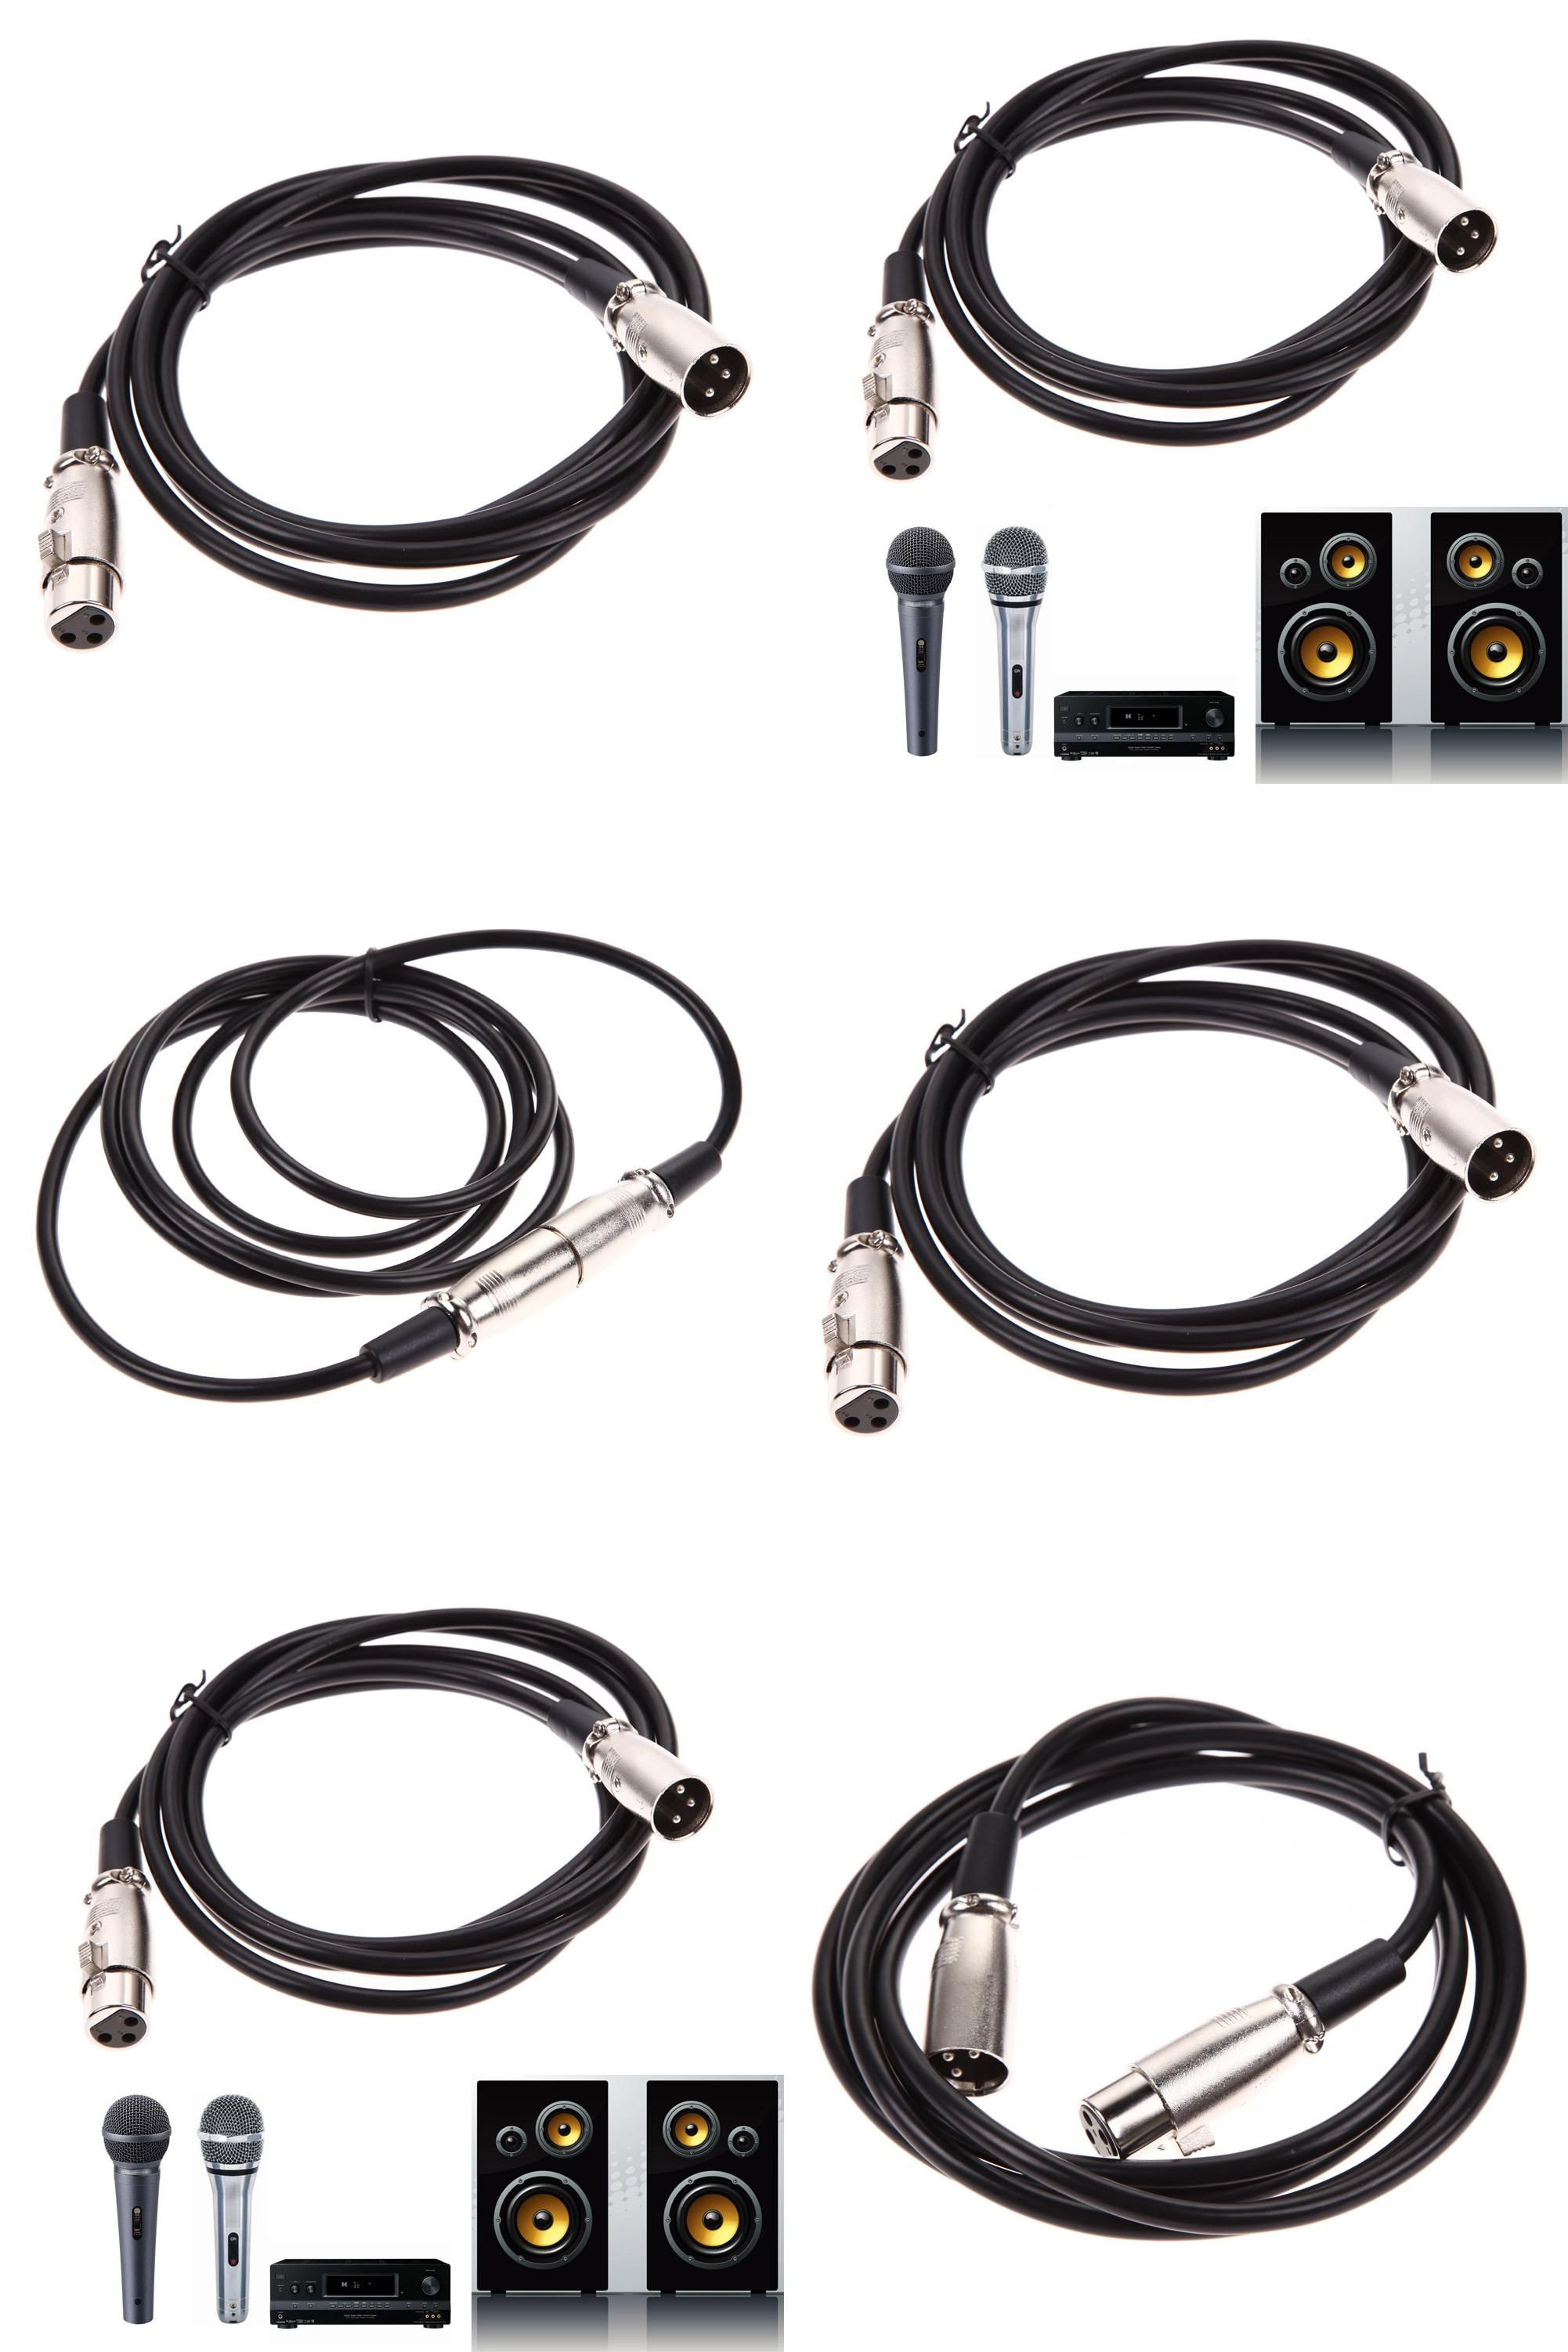 Visit To Buy 1 8 3 4 5 5 6 7 6 8 10 M Shielded 3pin Xlr